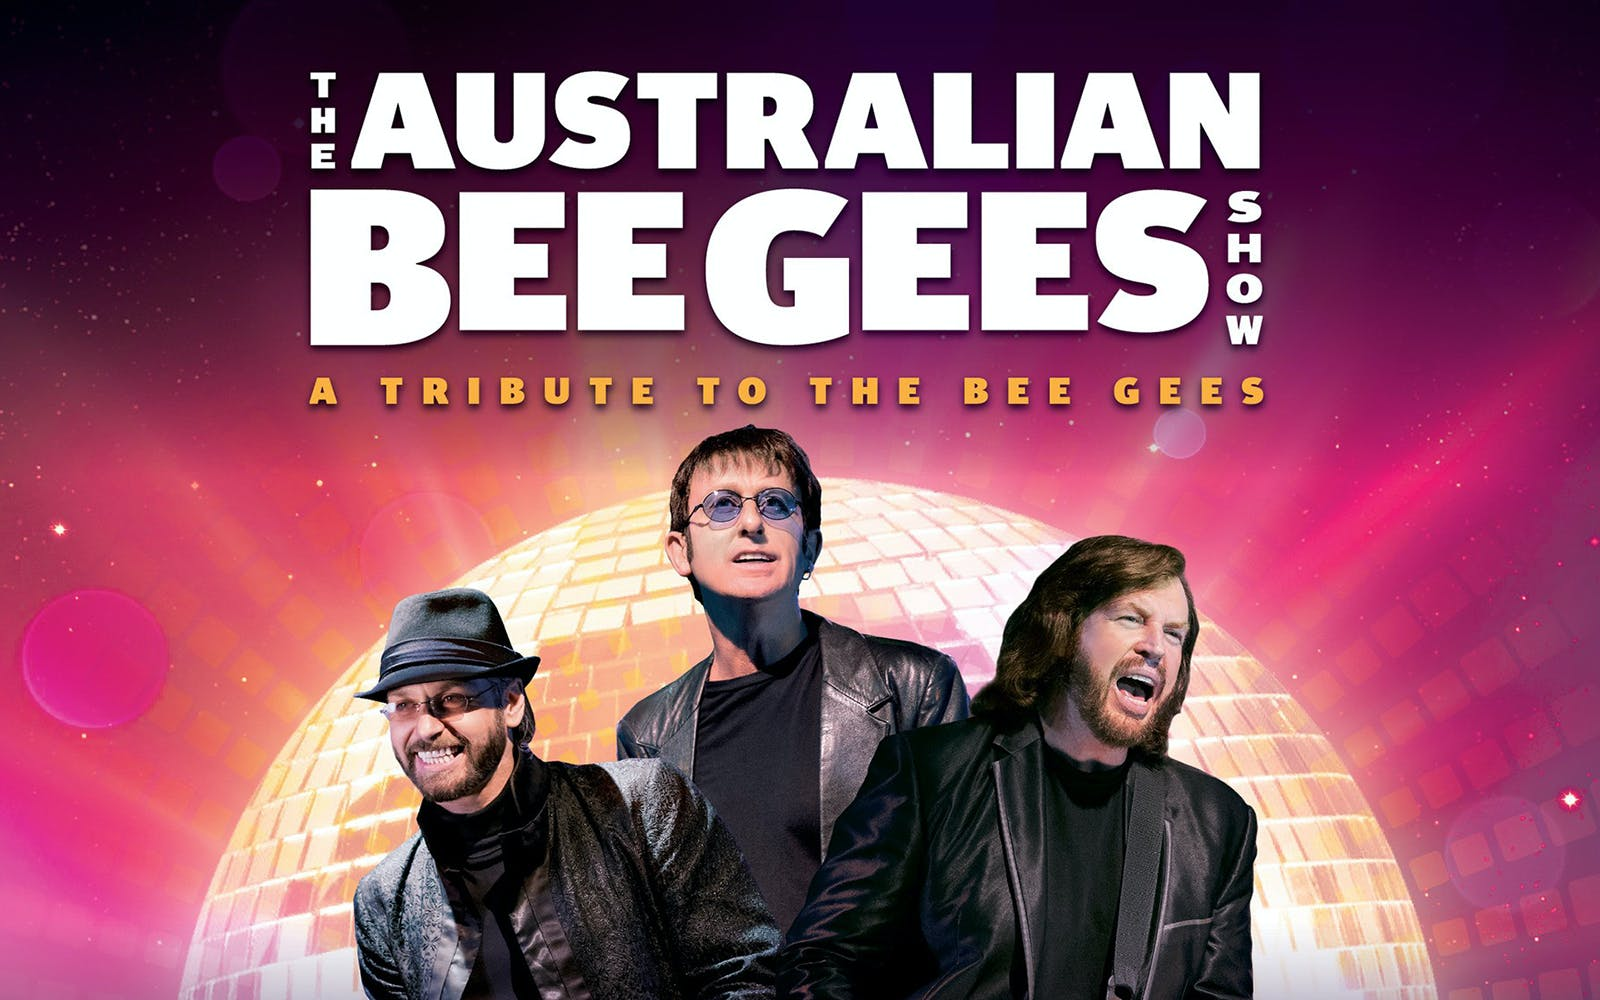 the australian bee gees-1